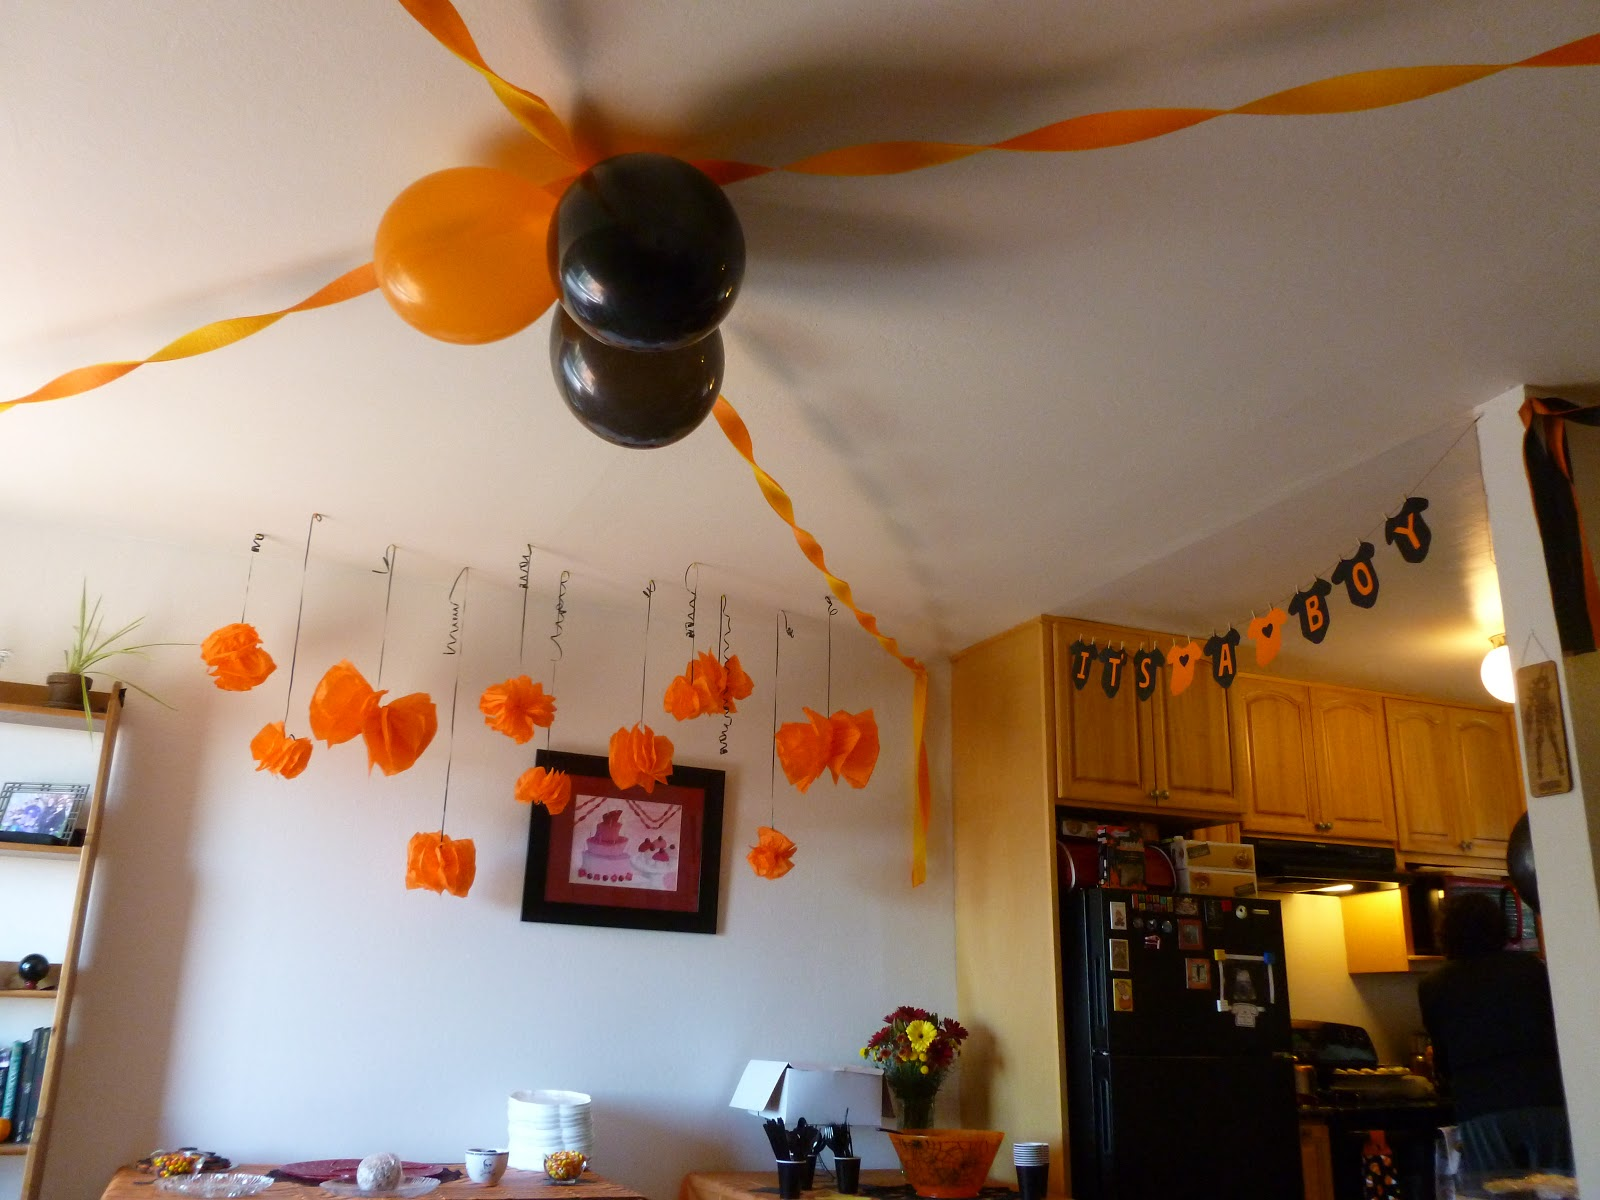 halloween balloon ideas how to make balloon decorations for baby shower party favors ideas